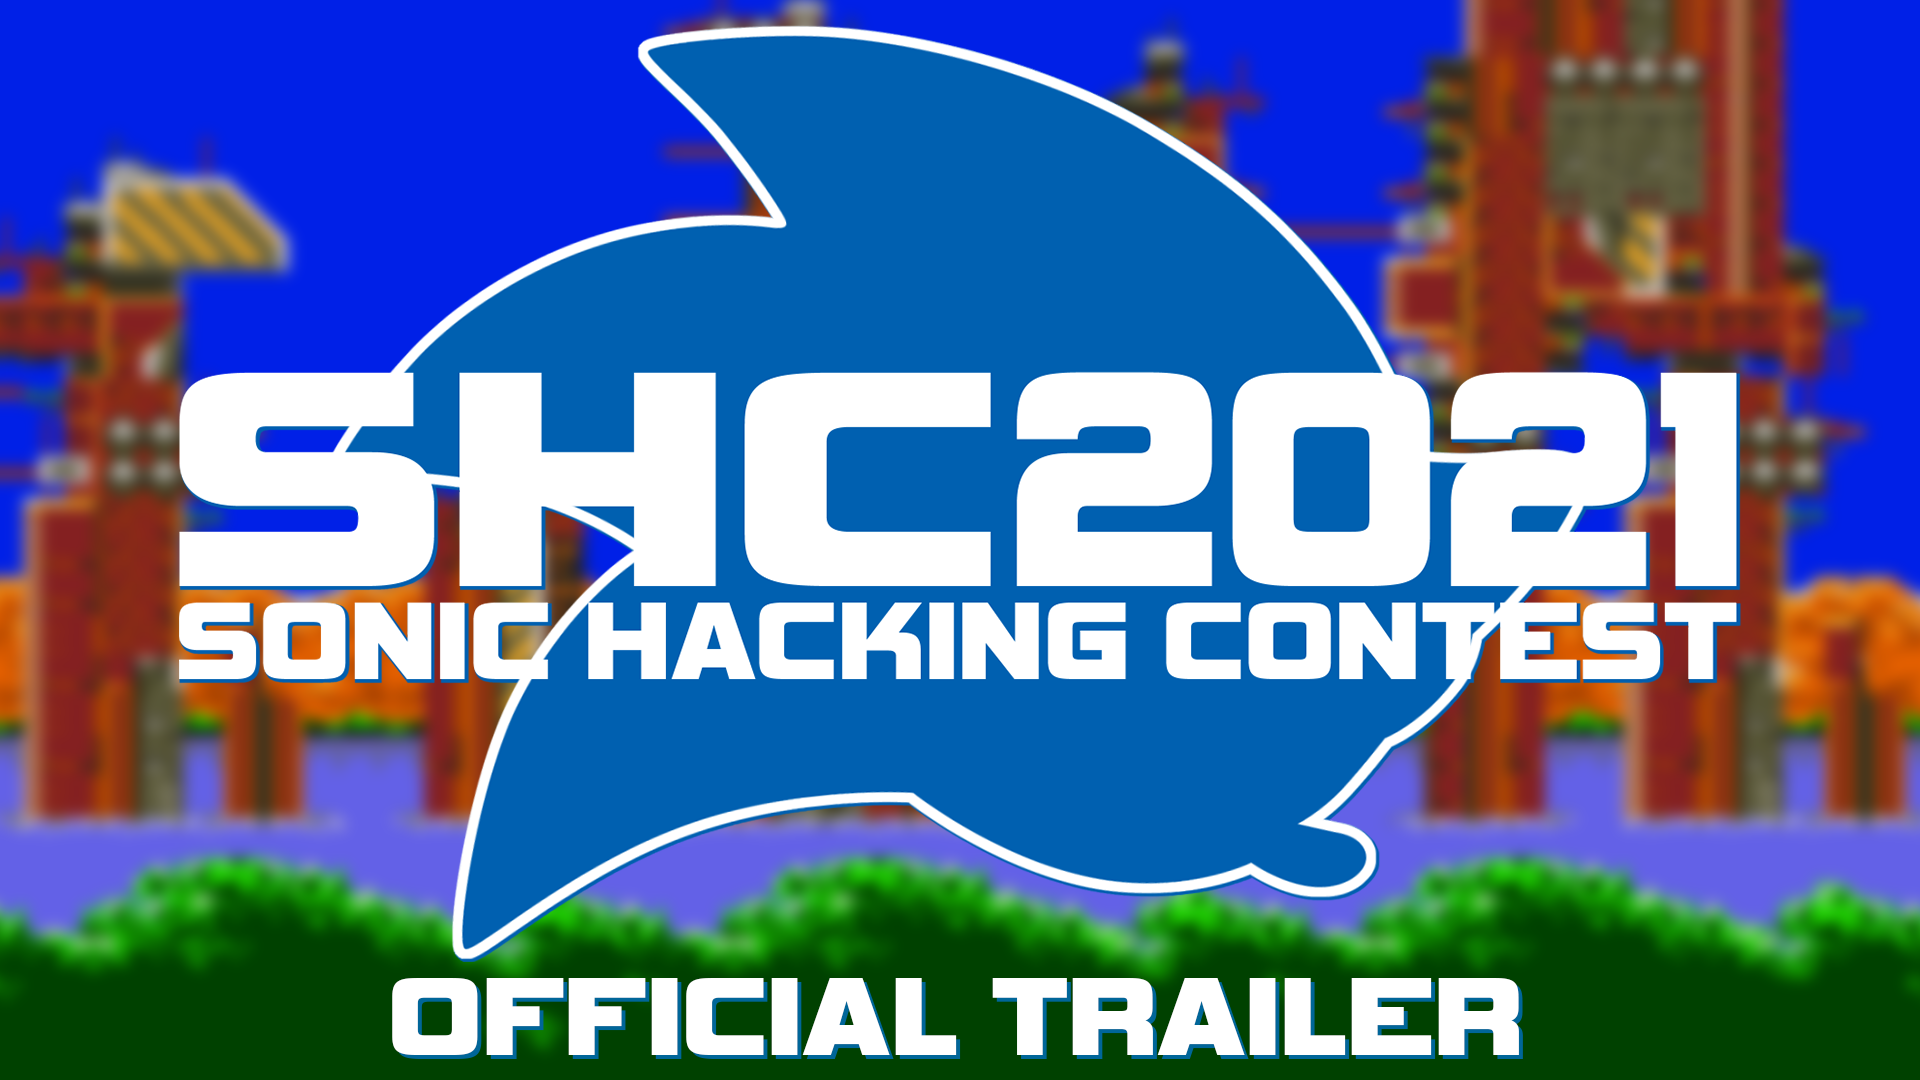 Sonic Hacking Contest 2021 is Here